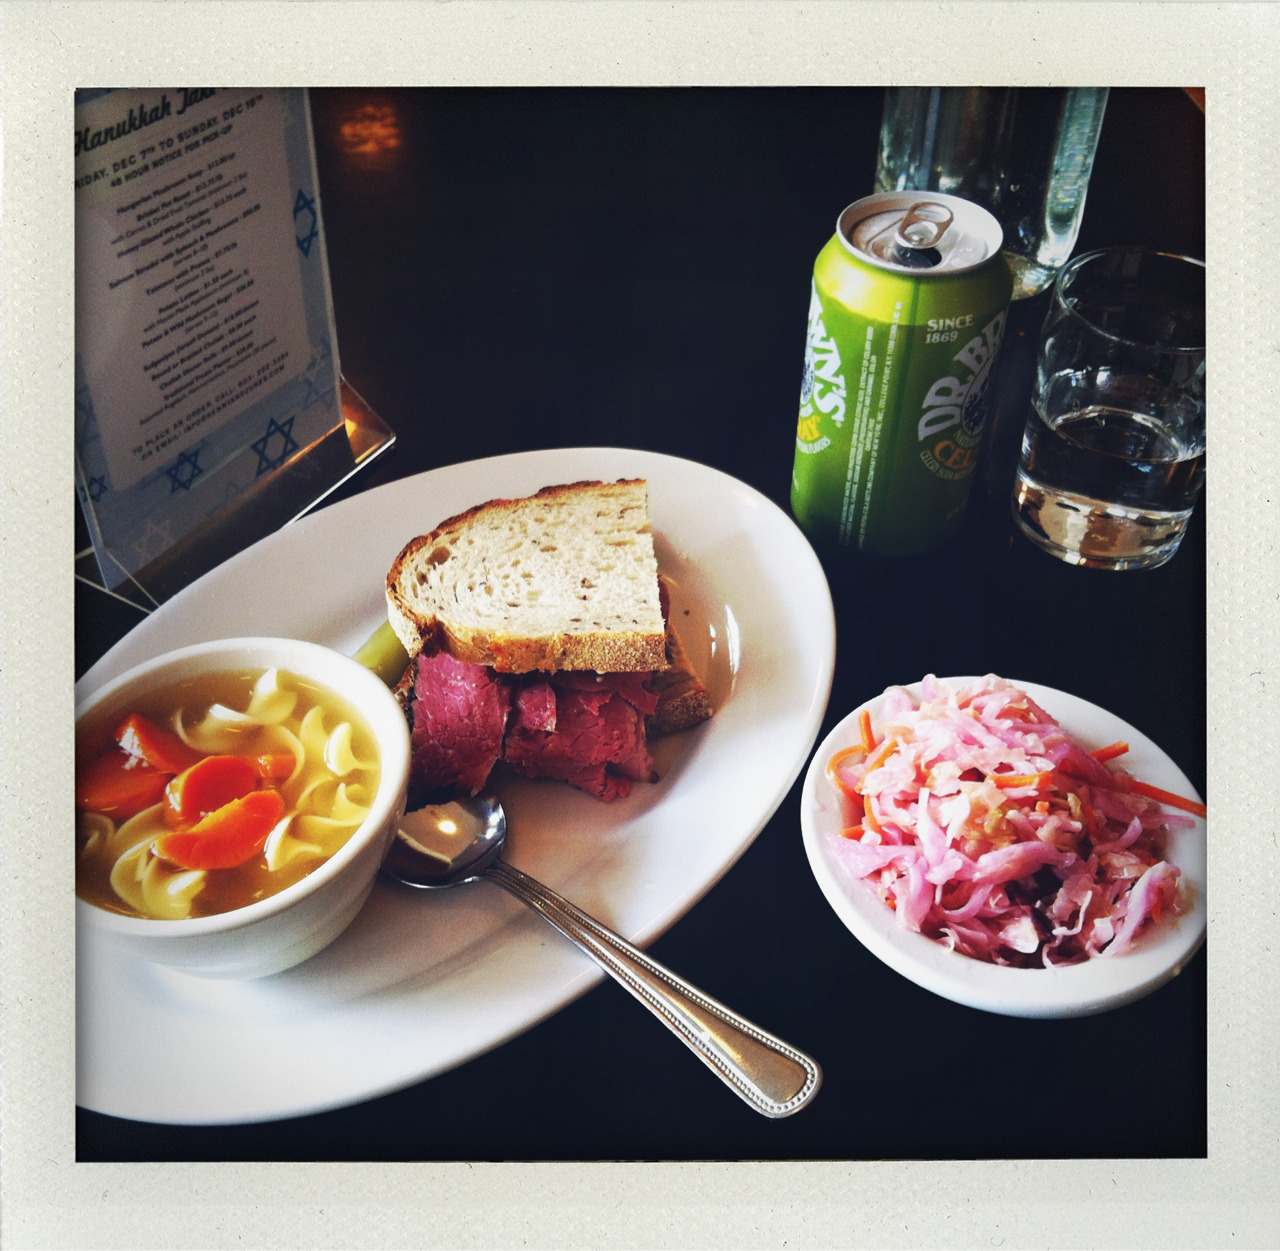 lunch special: half pastrami on rye with russian dressing and cup of chicken soup. side of coleslaw. cel-ray. end of term! i had myself a treat lunch today at kenny and zukes. that's right, i go deli when i go treat. i'll see you in a bit east coast, and then i will eat all of your bagels, because it ain't the same over here.